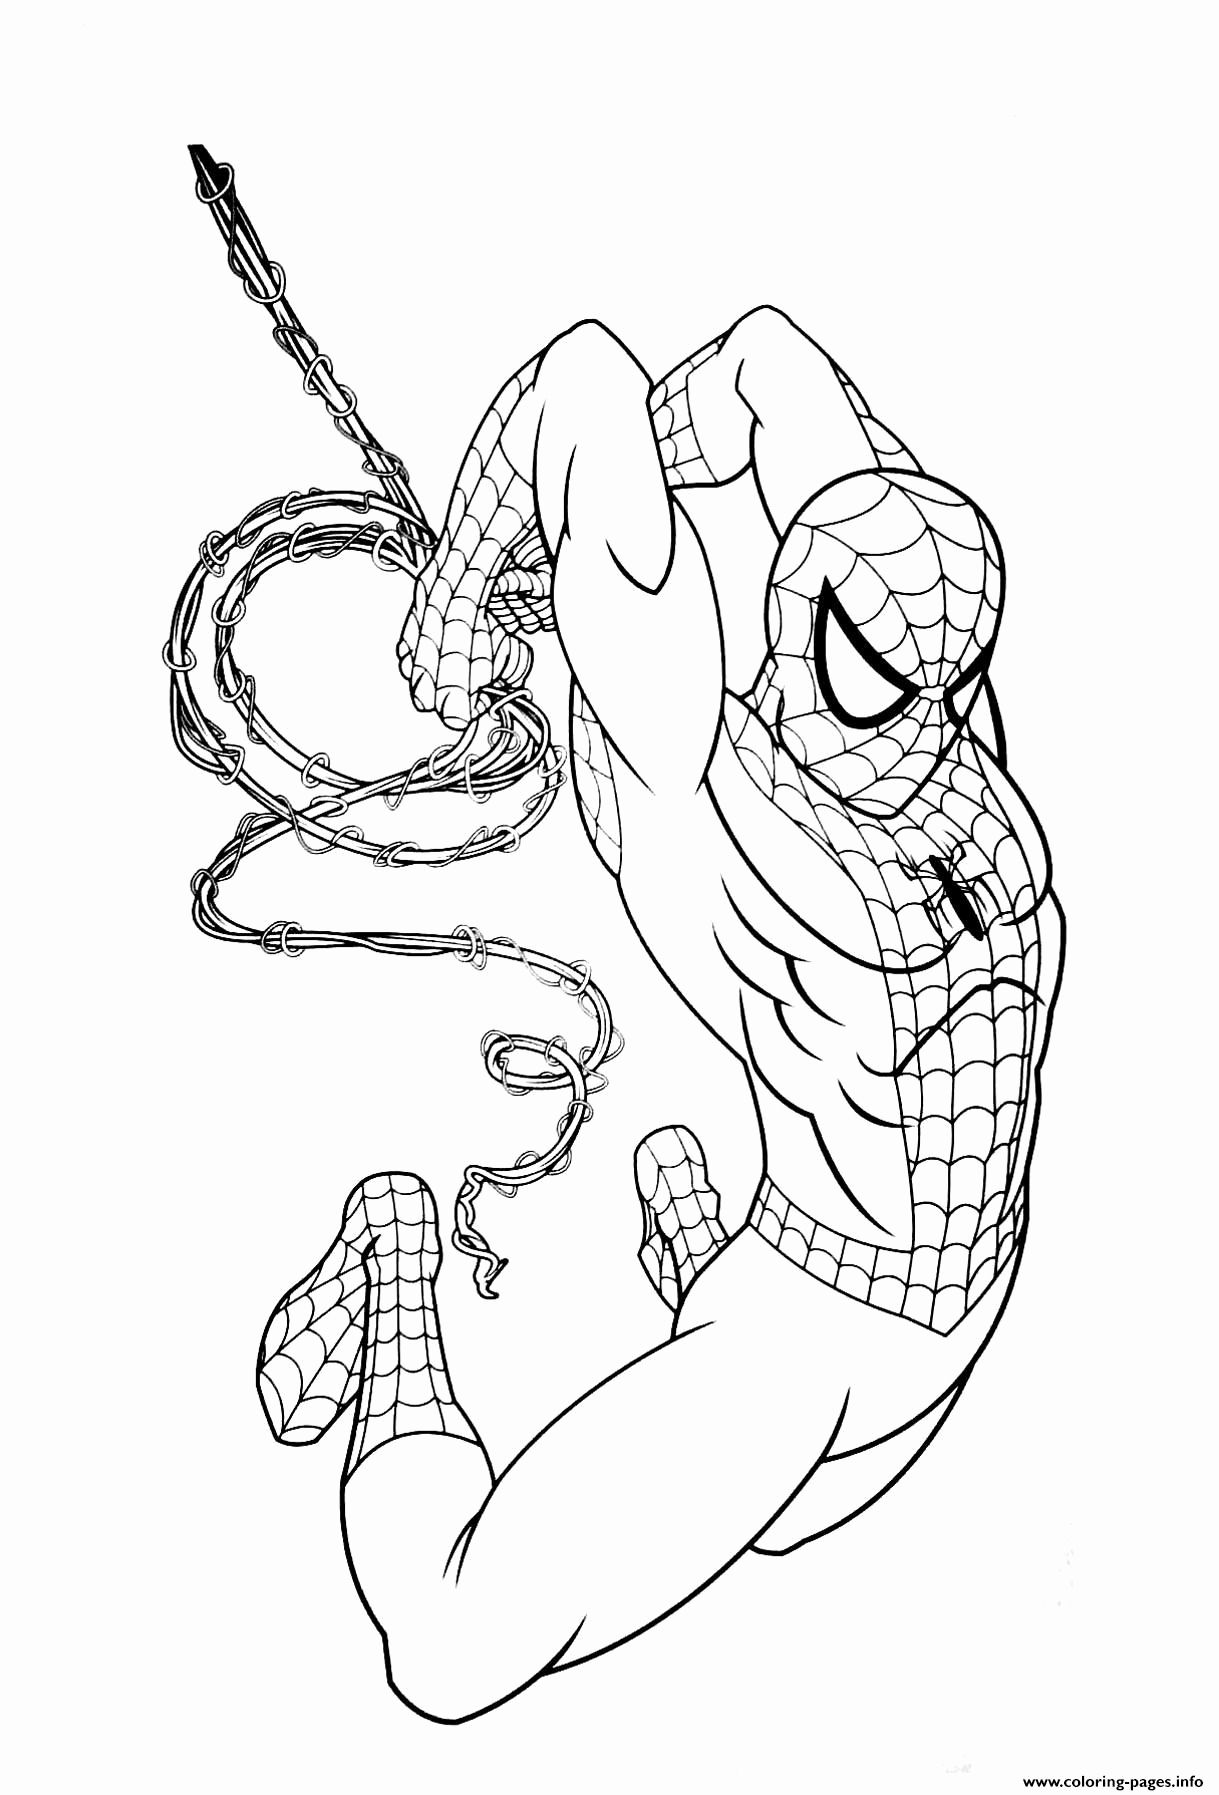 Captain America Civil War Coloring Pages In 2020 Captain America Coloring Pages Coloring Pages Superhero Printables Free